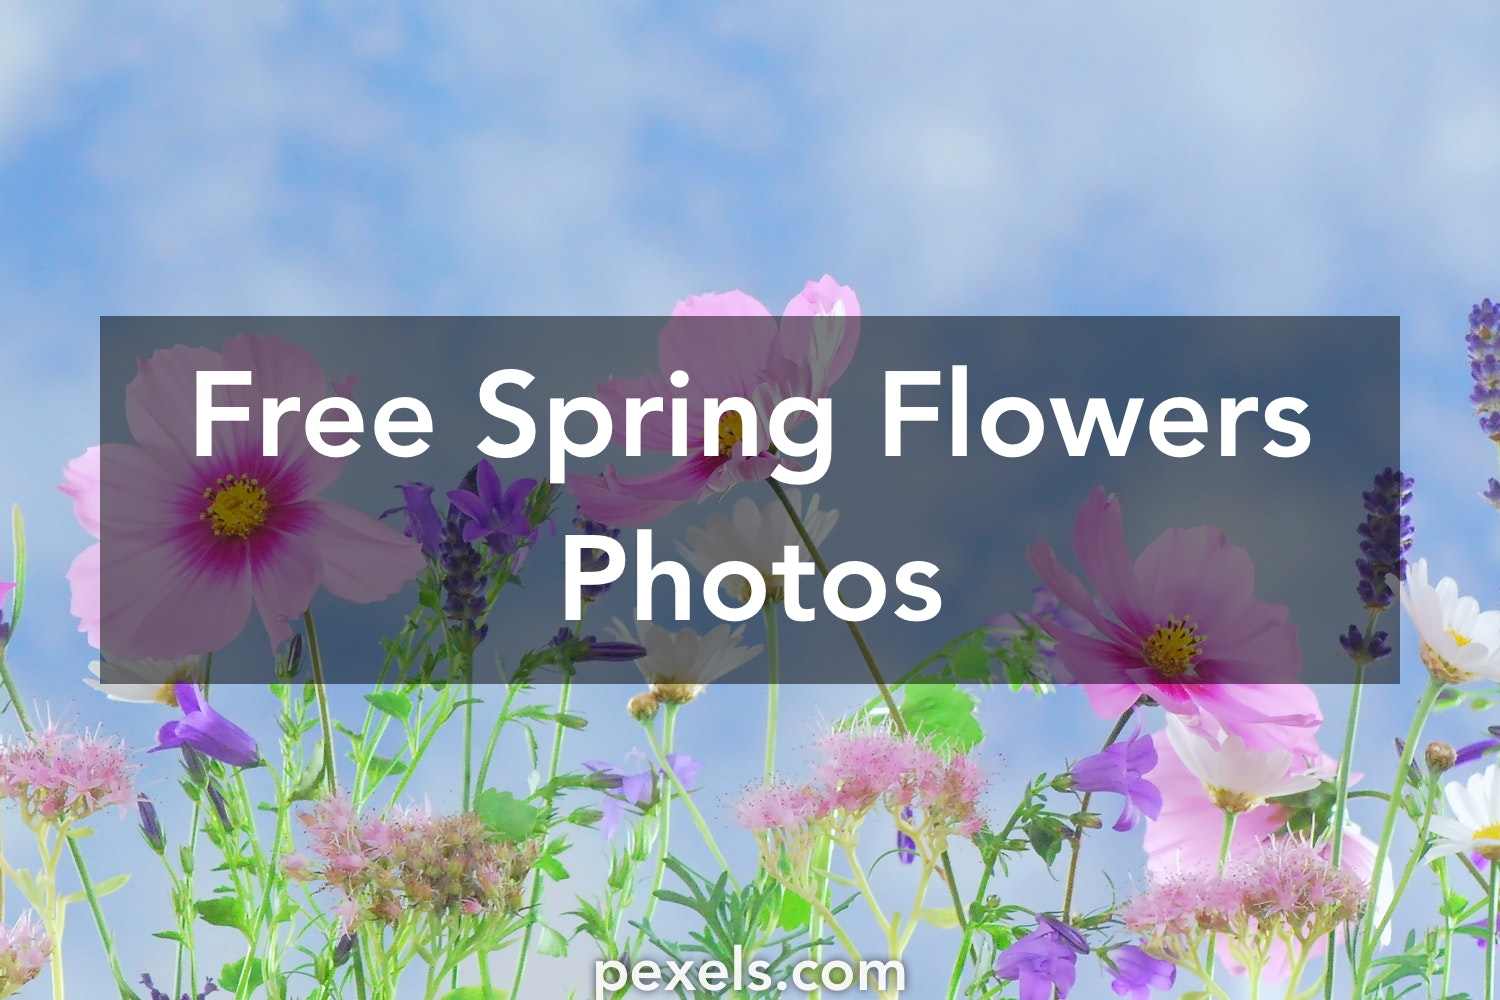 1000 beautiful spring flowers photos pexels free stock photos mightylinksfo